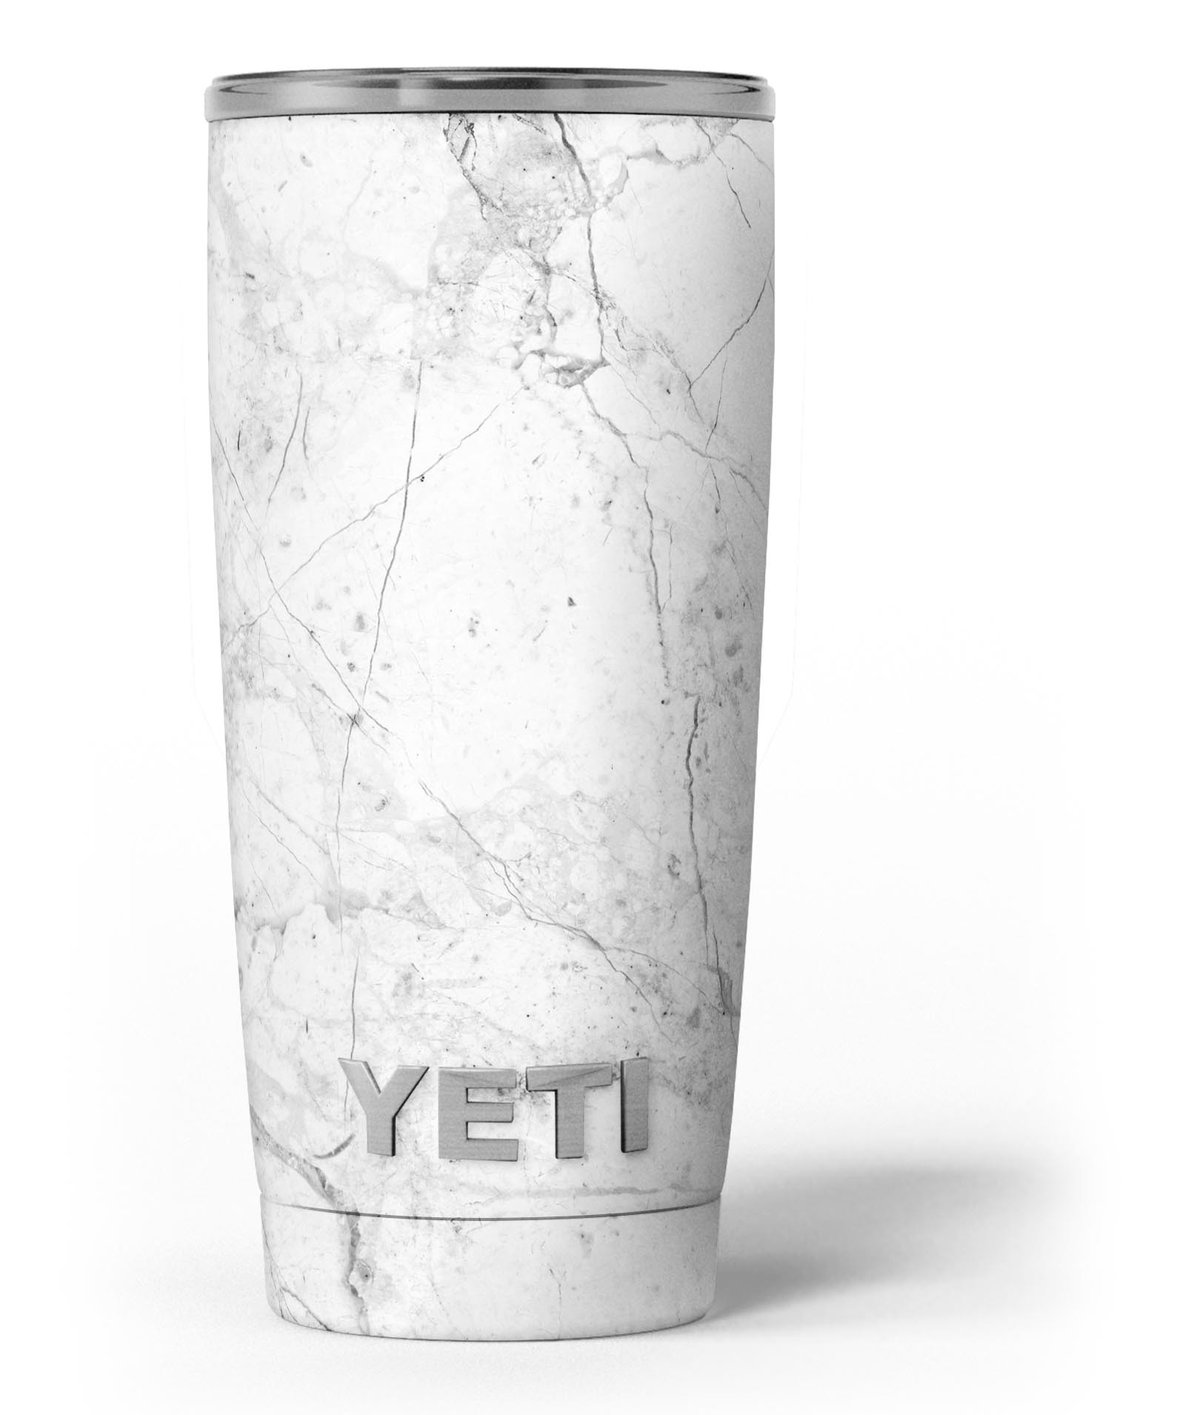 Yeti Rambler Cooler with Design Skiz Carrara marble skin